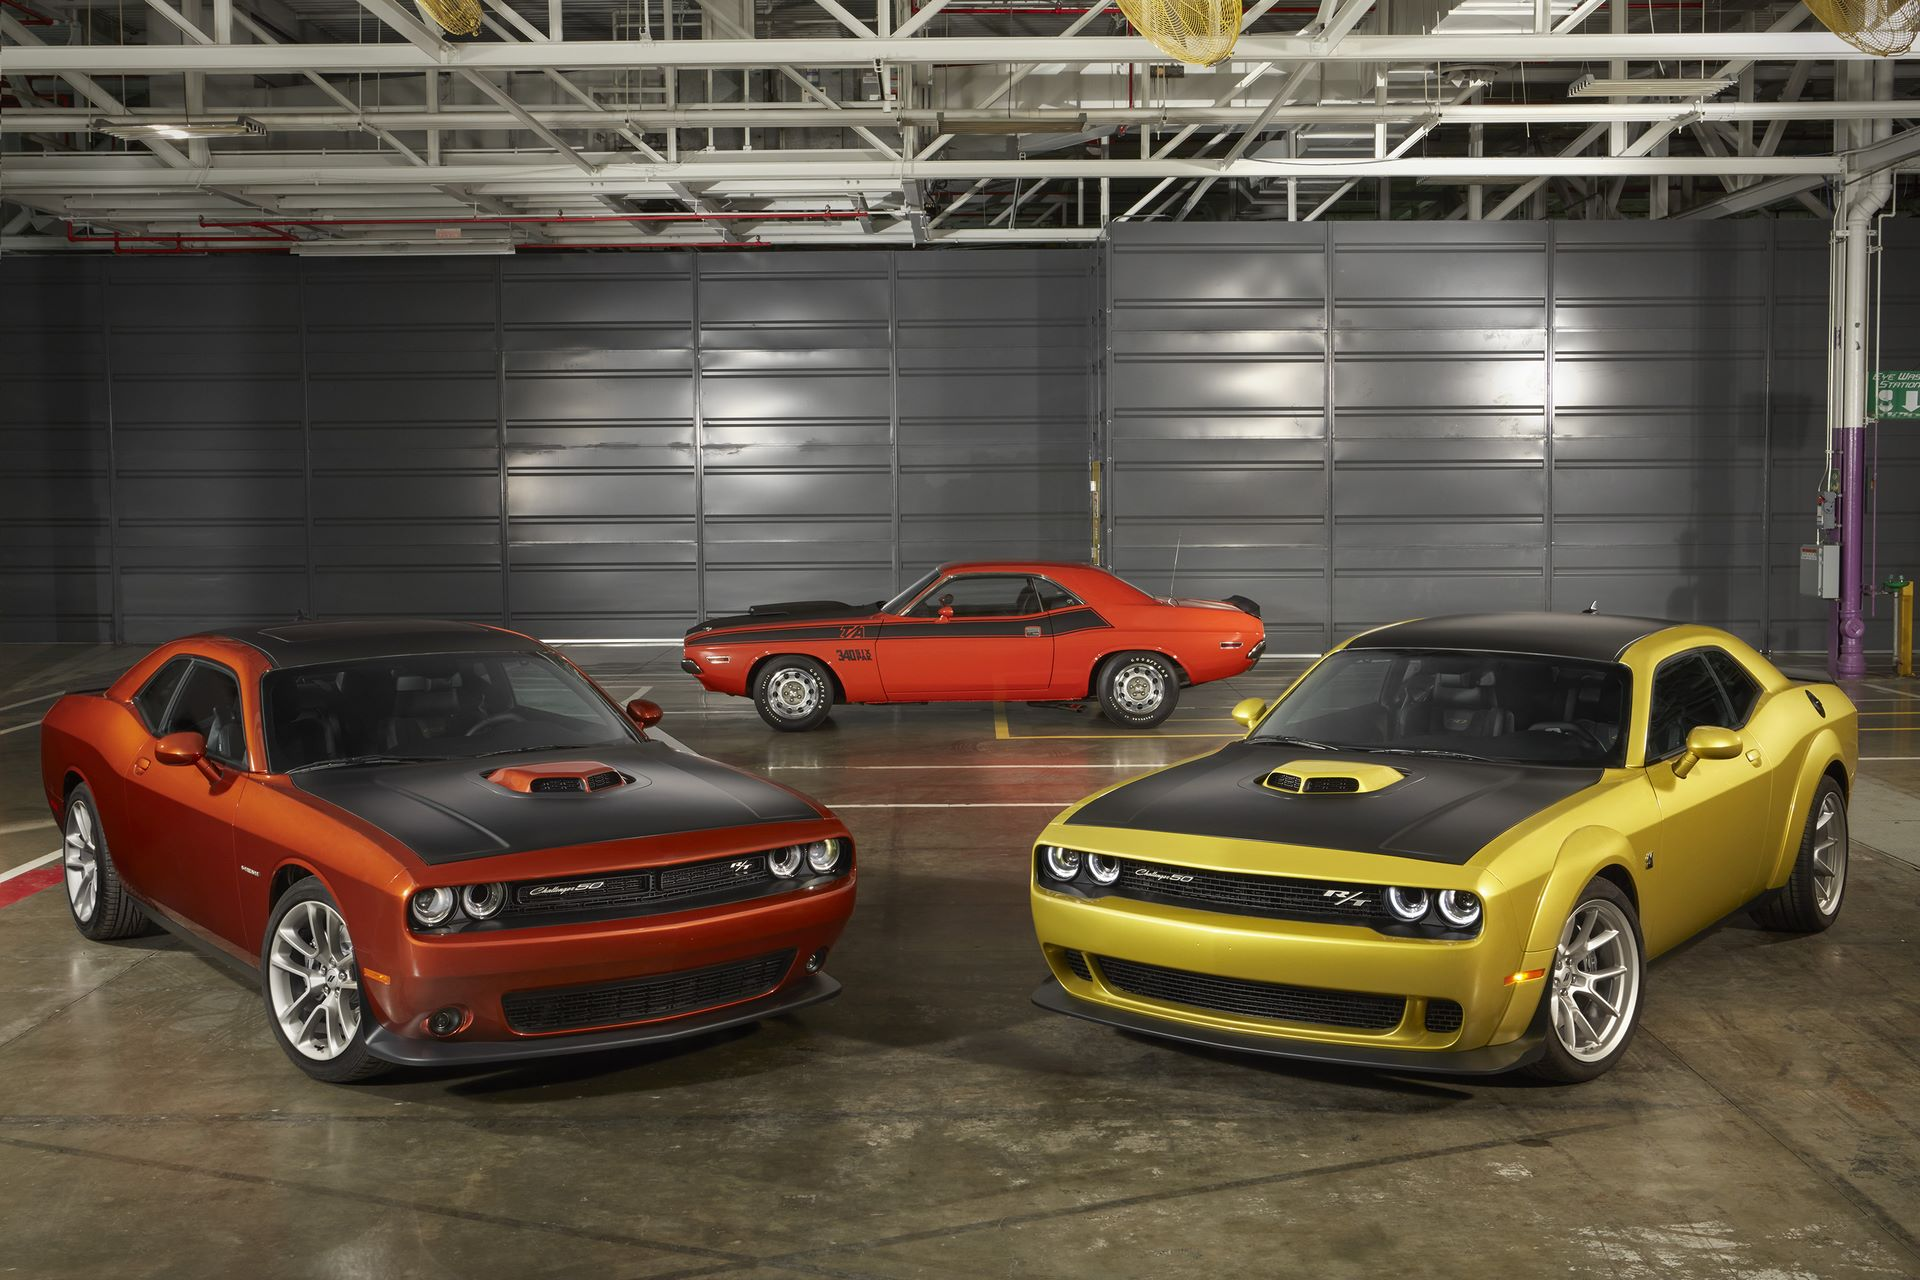 50th Anniversary Edition Challenger celebrates golden anniversary with new exterior paint color, body-color Shaker hood on HEMI® V-8 models, unique badging and heritage style available on four Challenger models.